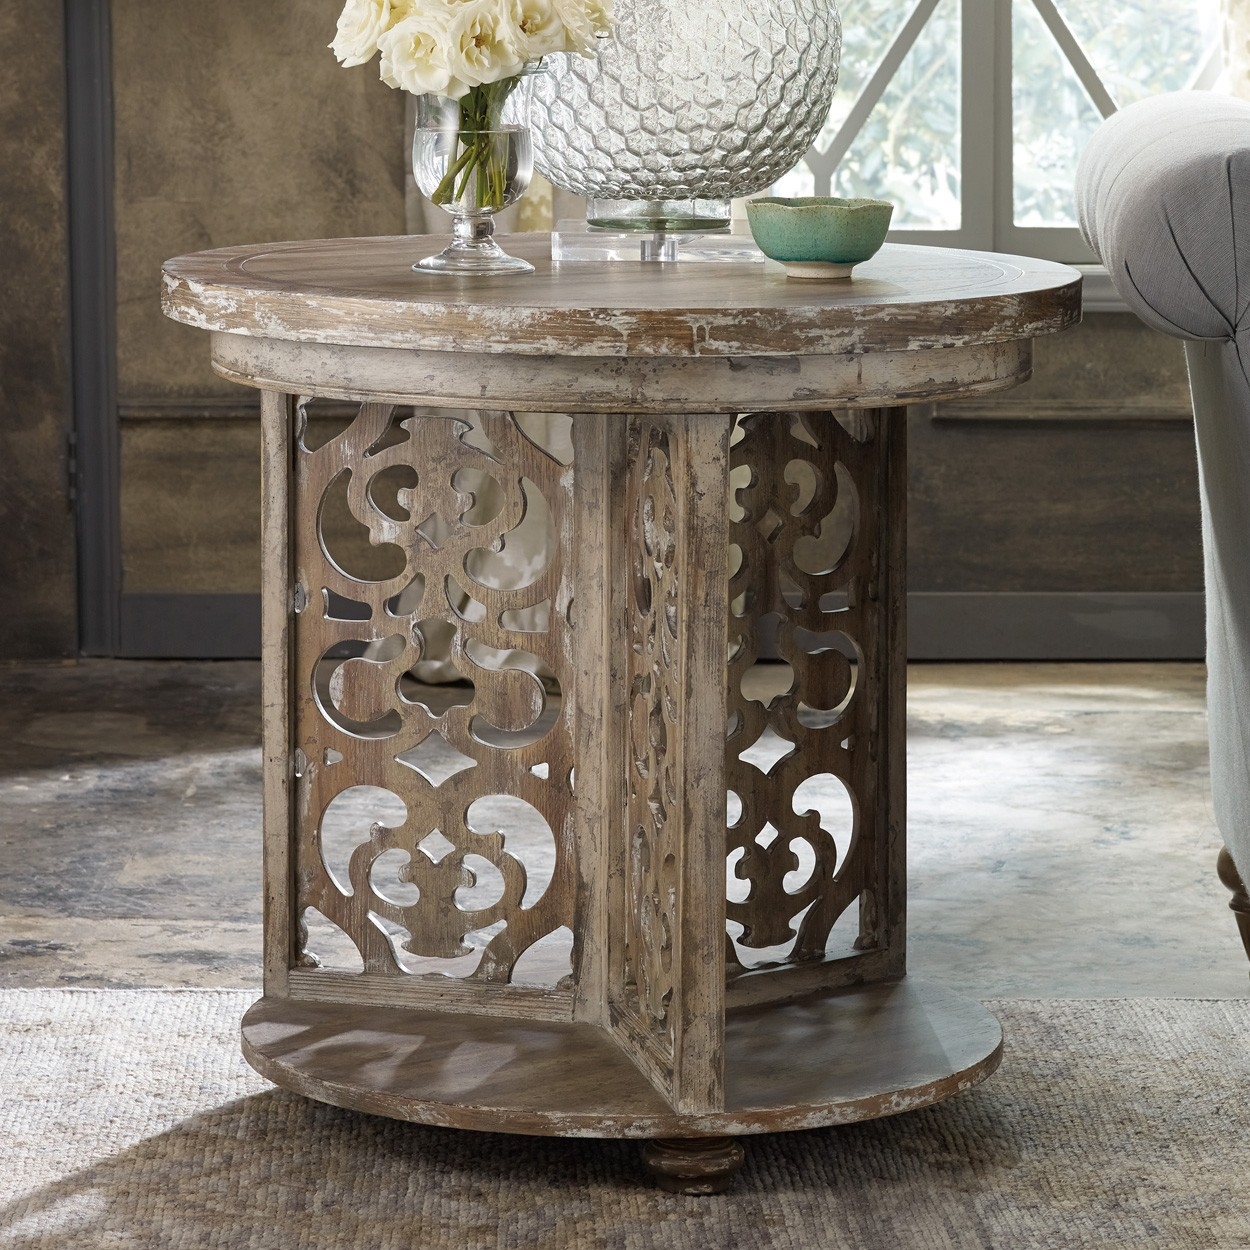 chatelet wood round accent table caramel froth humble abode roundaccenttable caramelfroth hookerfurniture fretwork blue turquoise dresser ceramic sofa and end tables roland drum